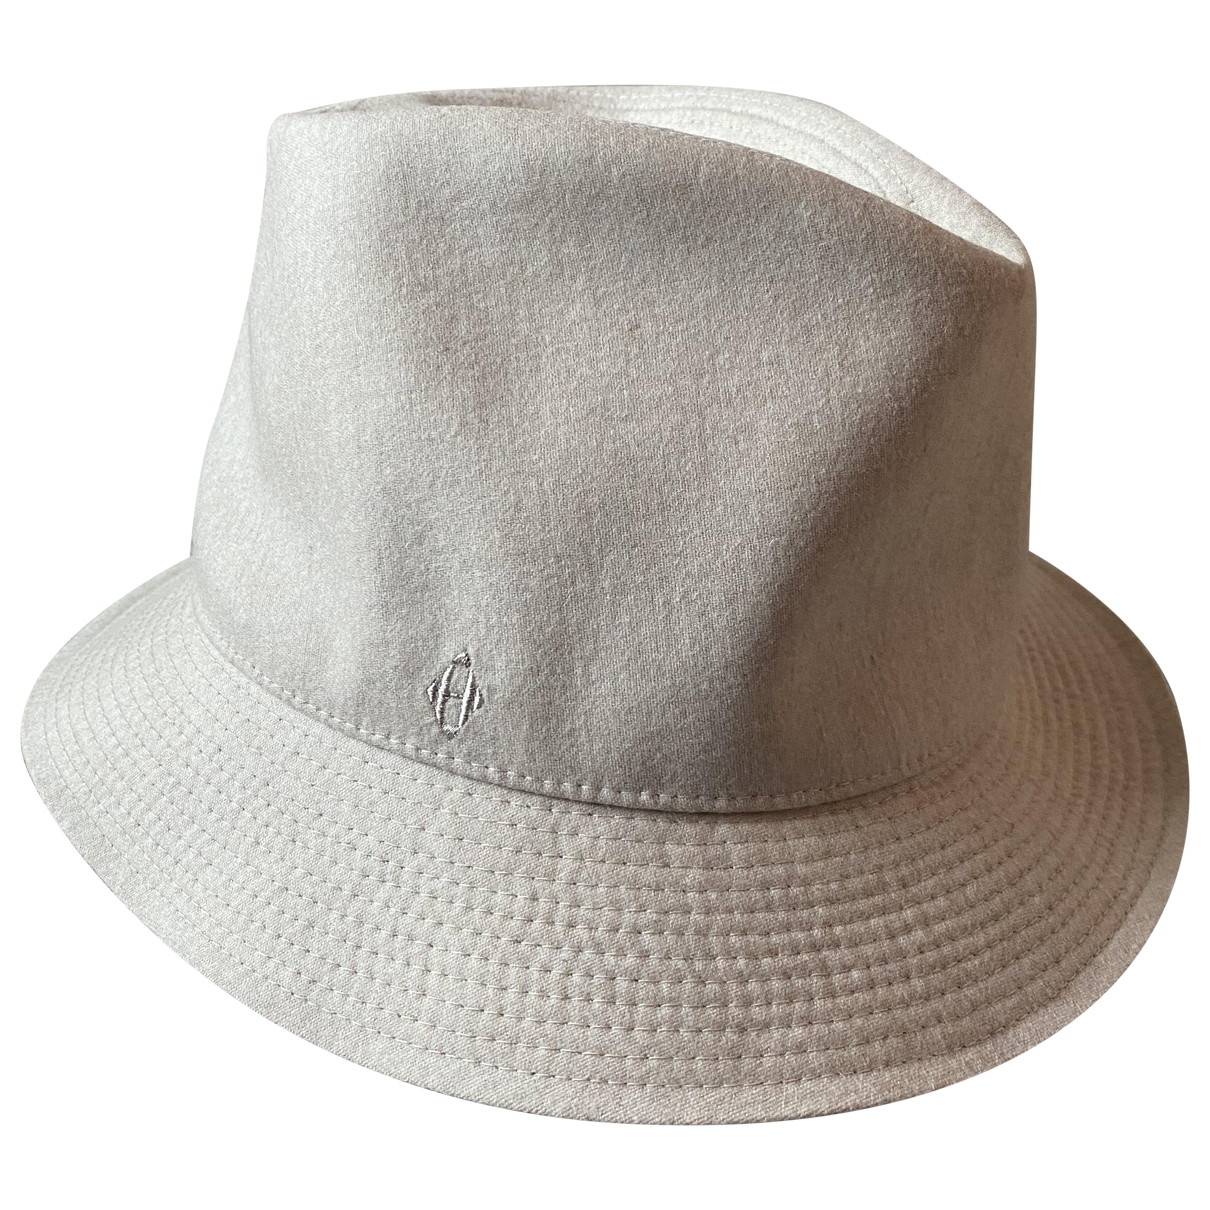 Hermès \N Beige Wool hat for Women 58 cm